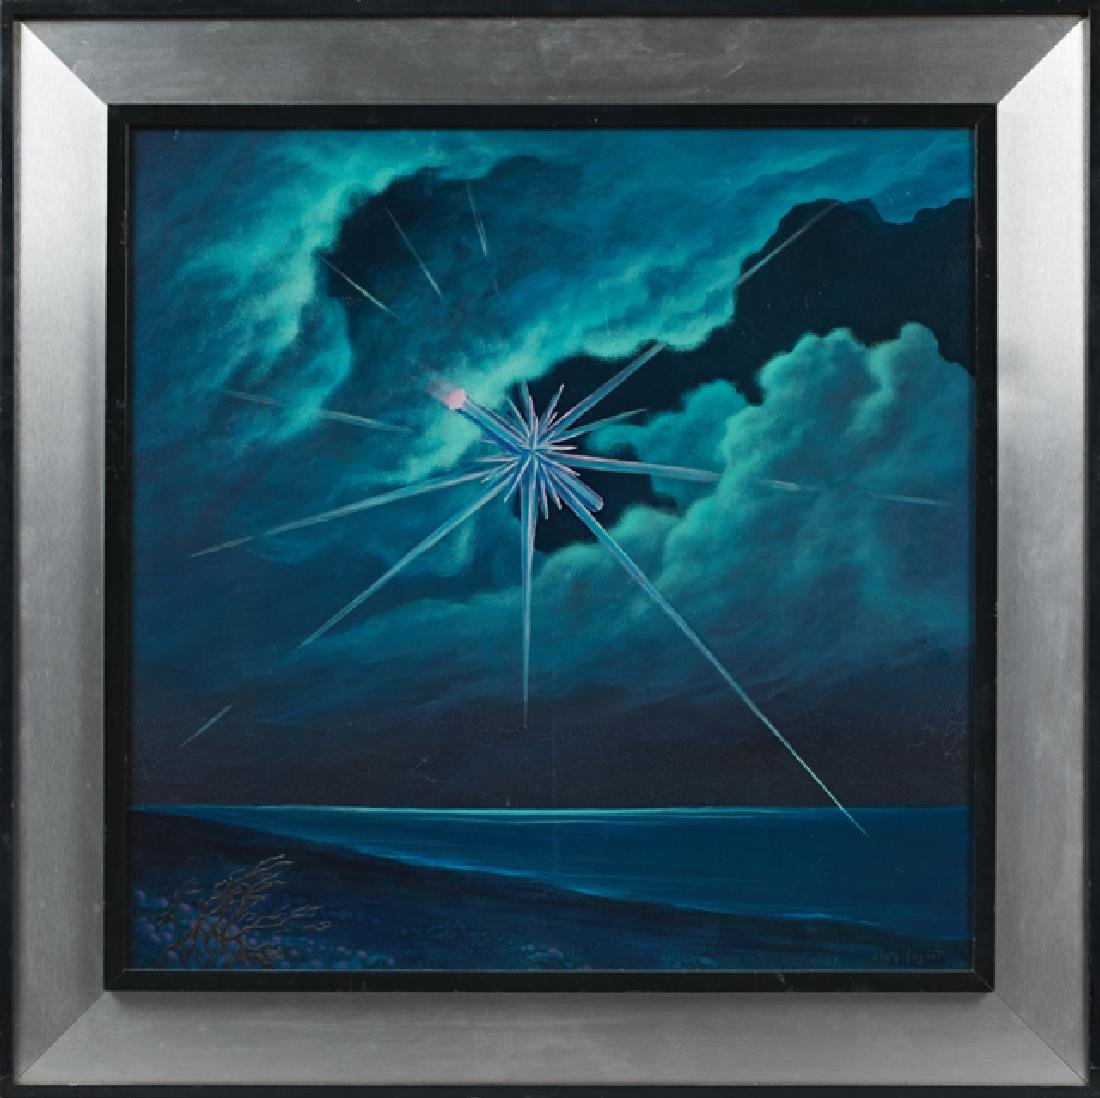 """Charles Joguet, """"Star in the Sky Over the Ocean,"""" 20th"""